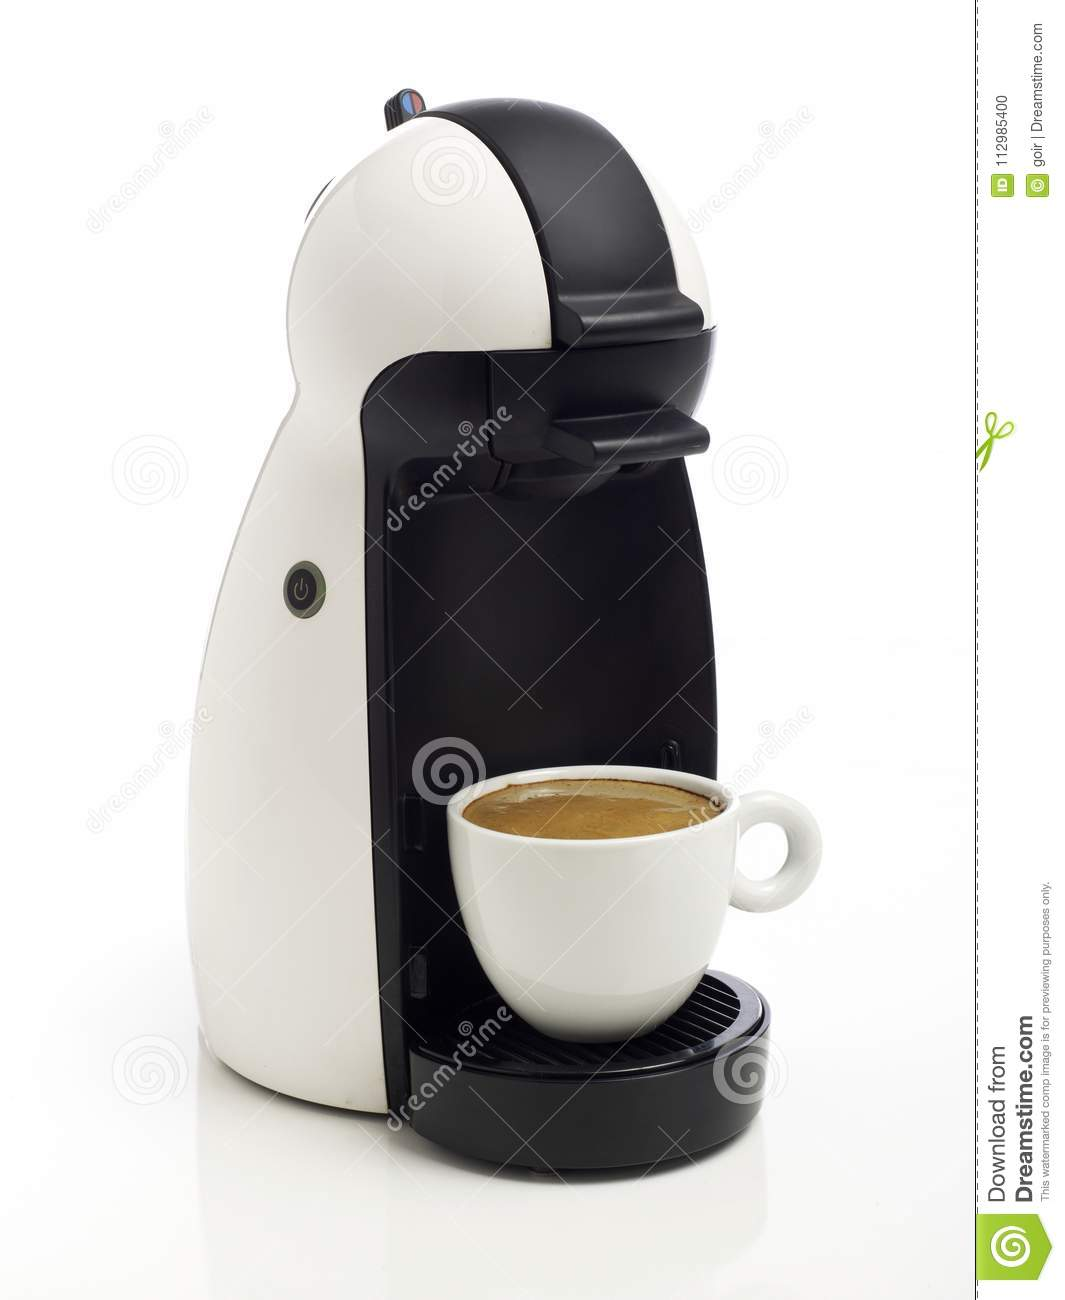 Coffee maker on white